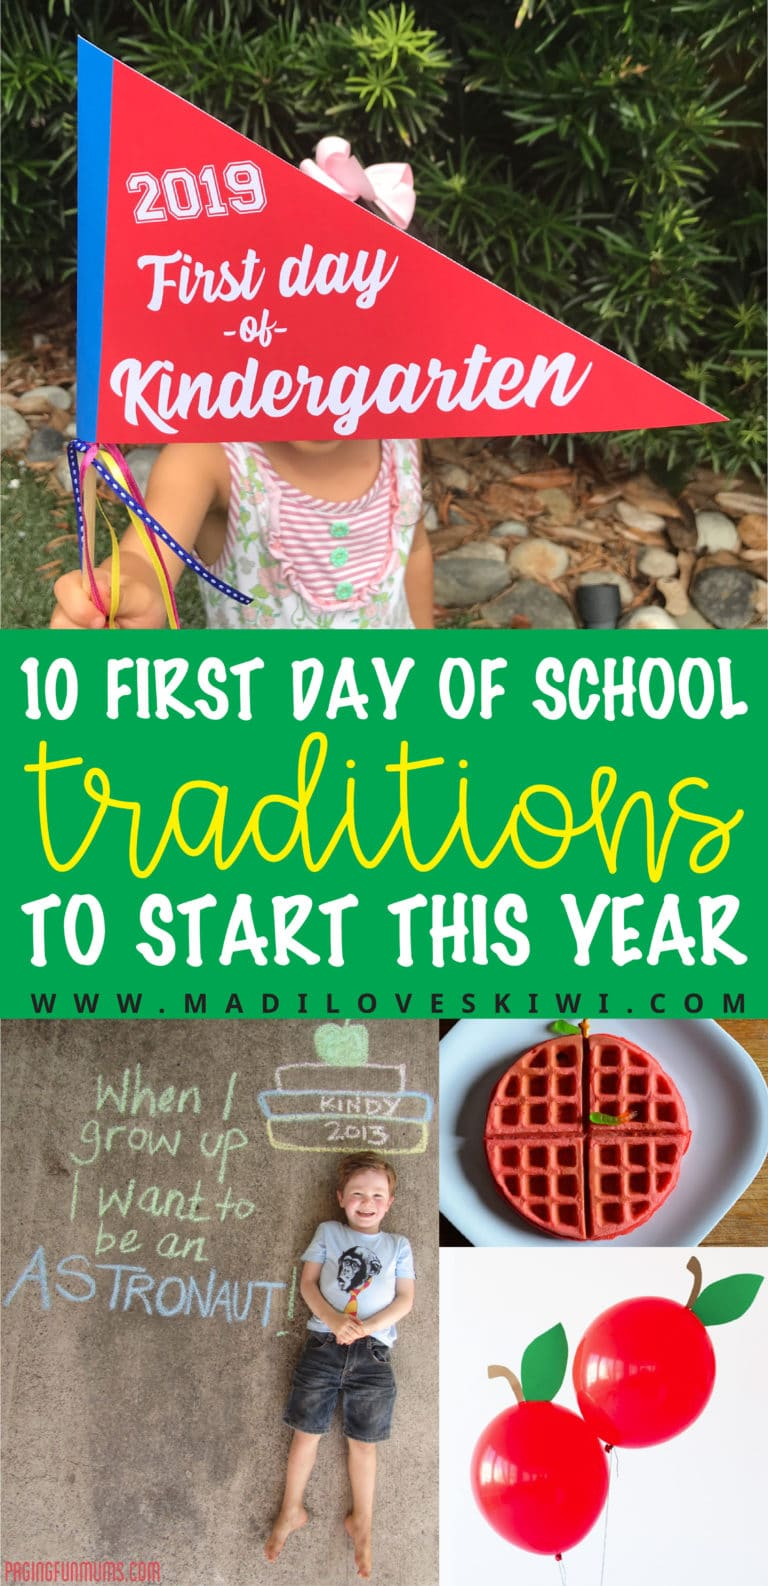 10 Ten First Day of School Traditions to Start This Year with Your Kids